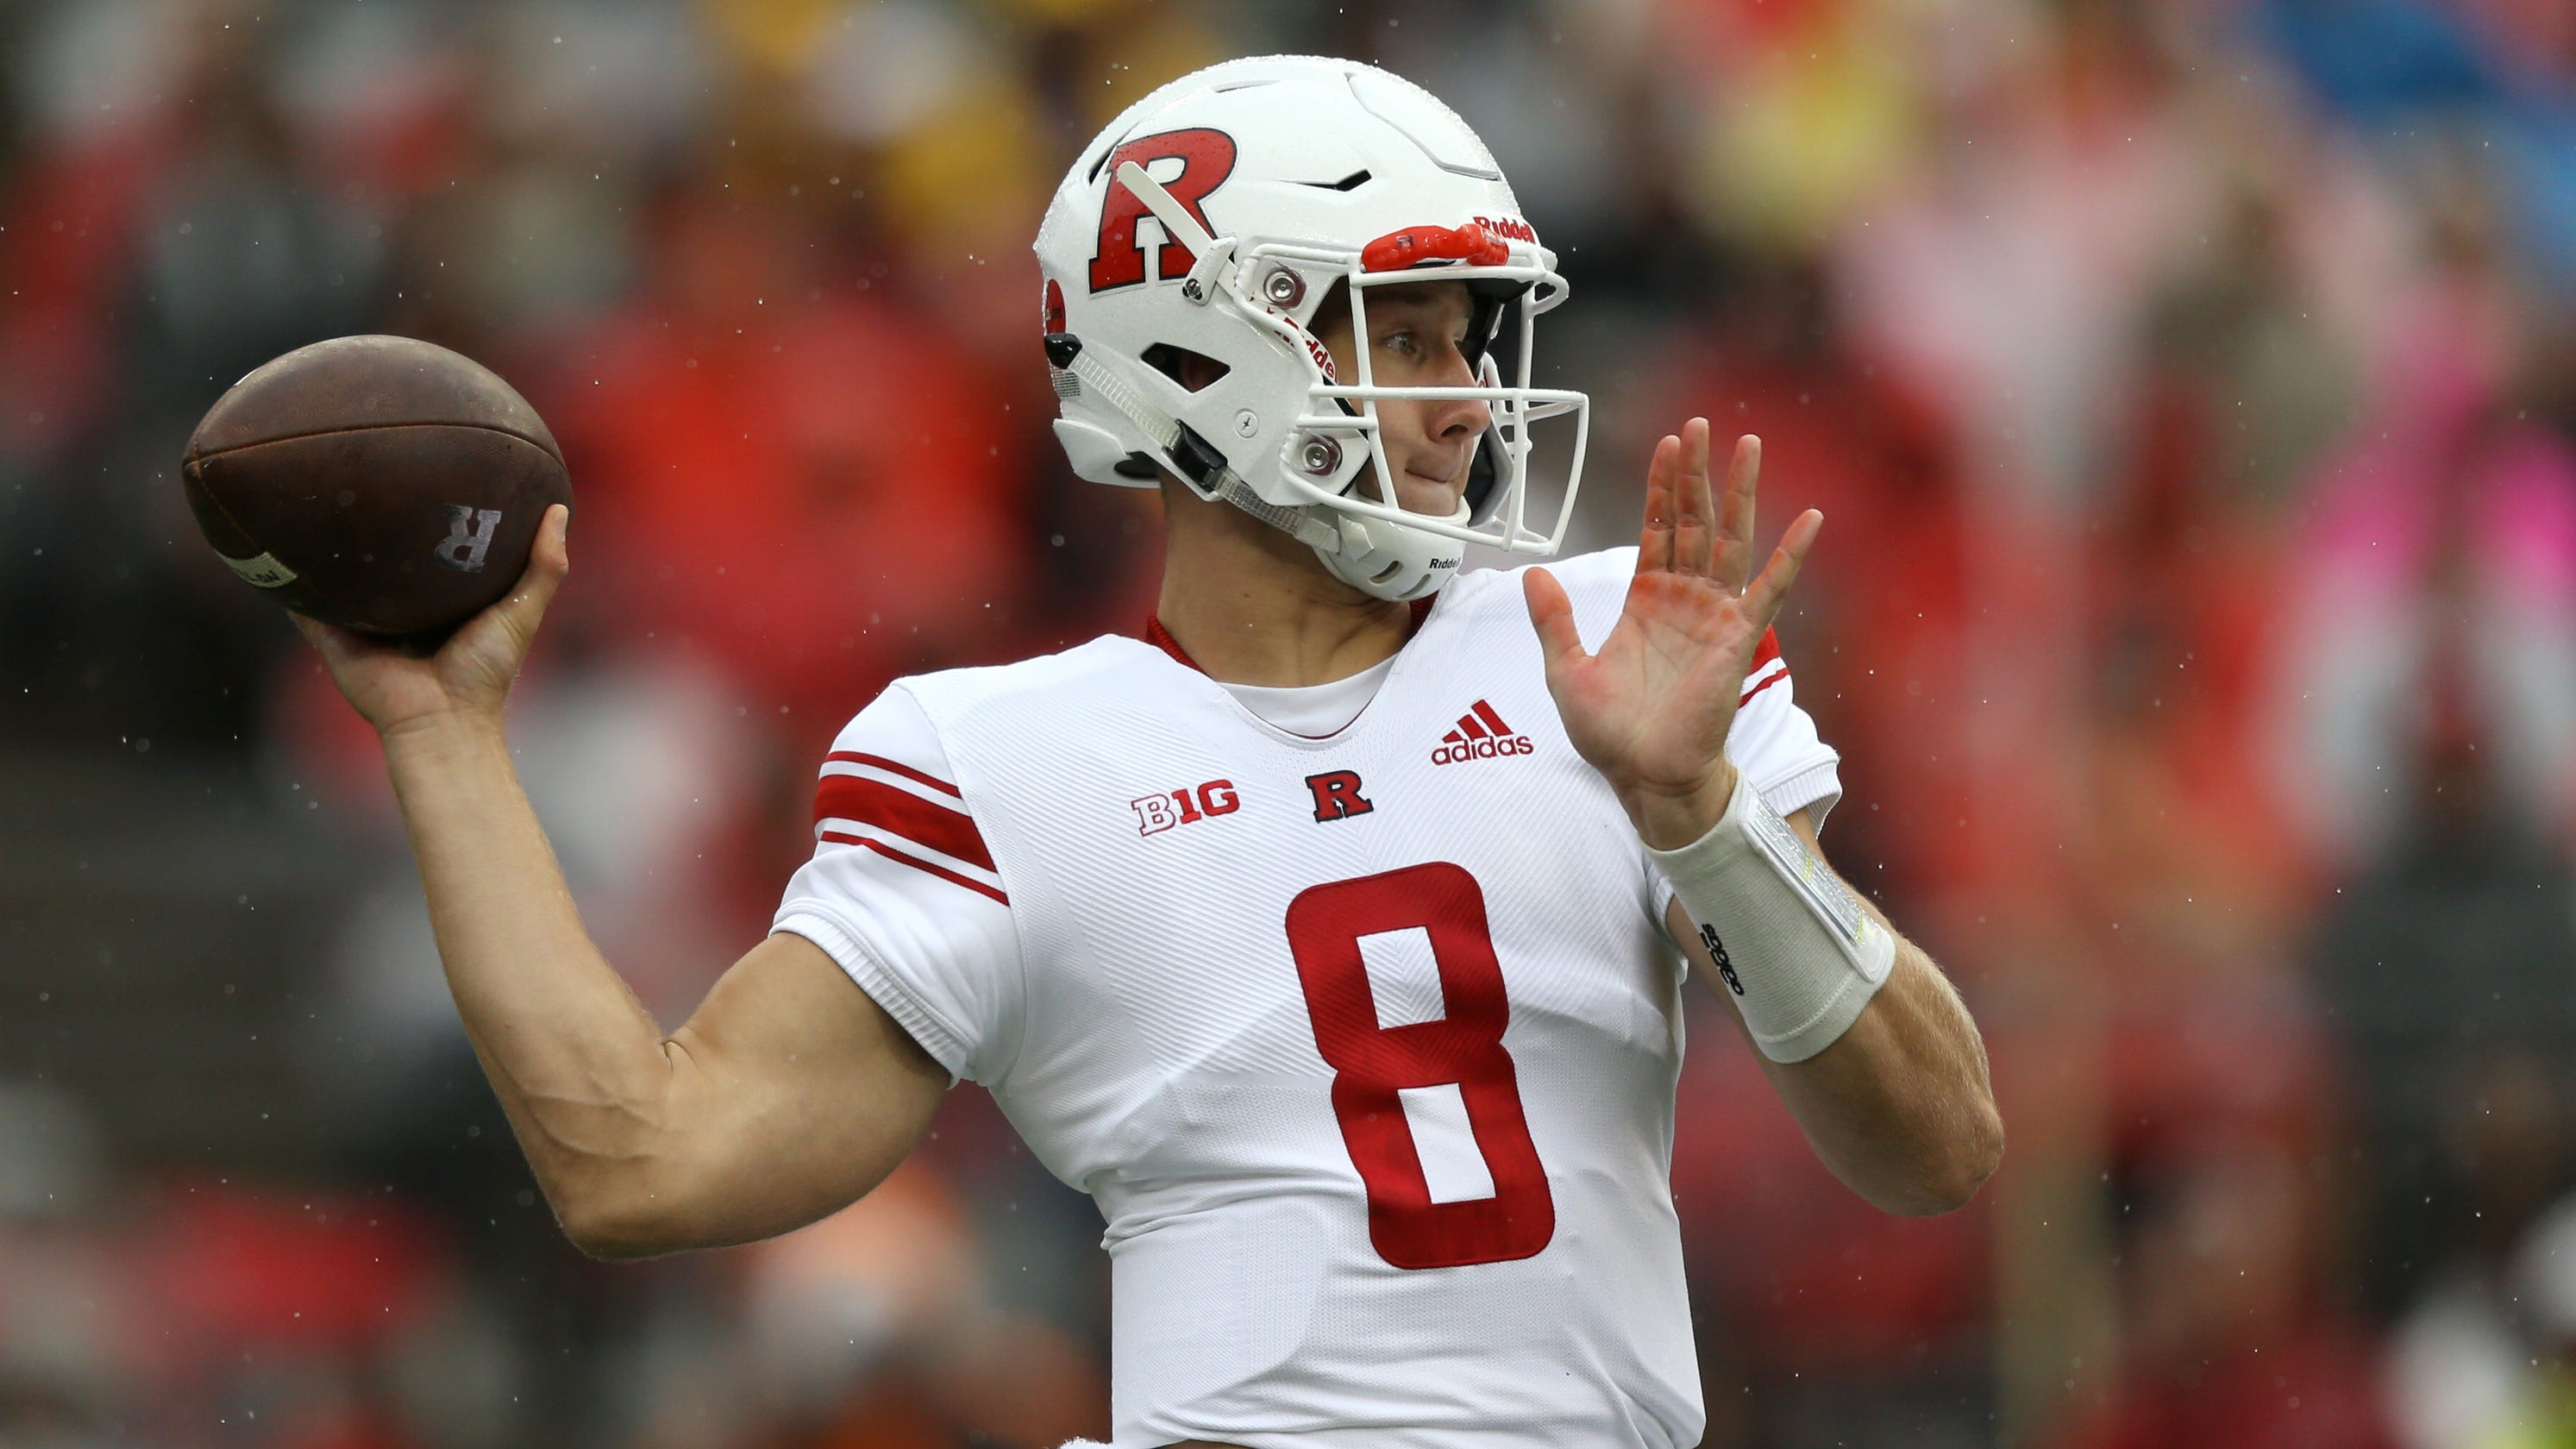 College football: What is Rutgers status, future in Big Ten